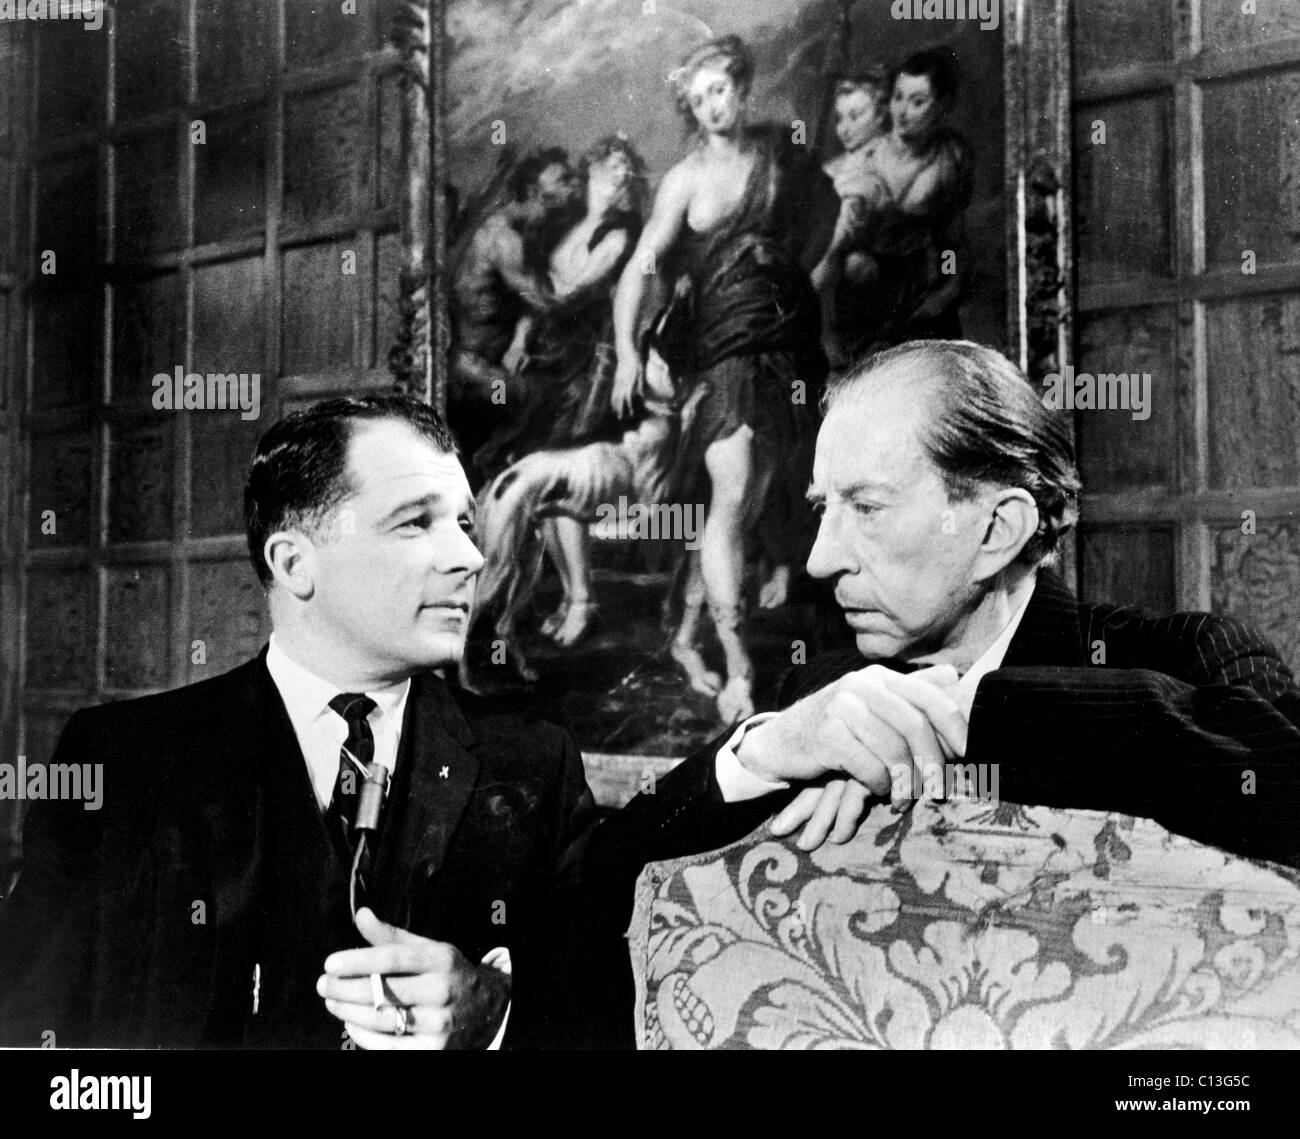 J. Paul Getty, and Lee Bailey, 1967 - Stock Image